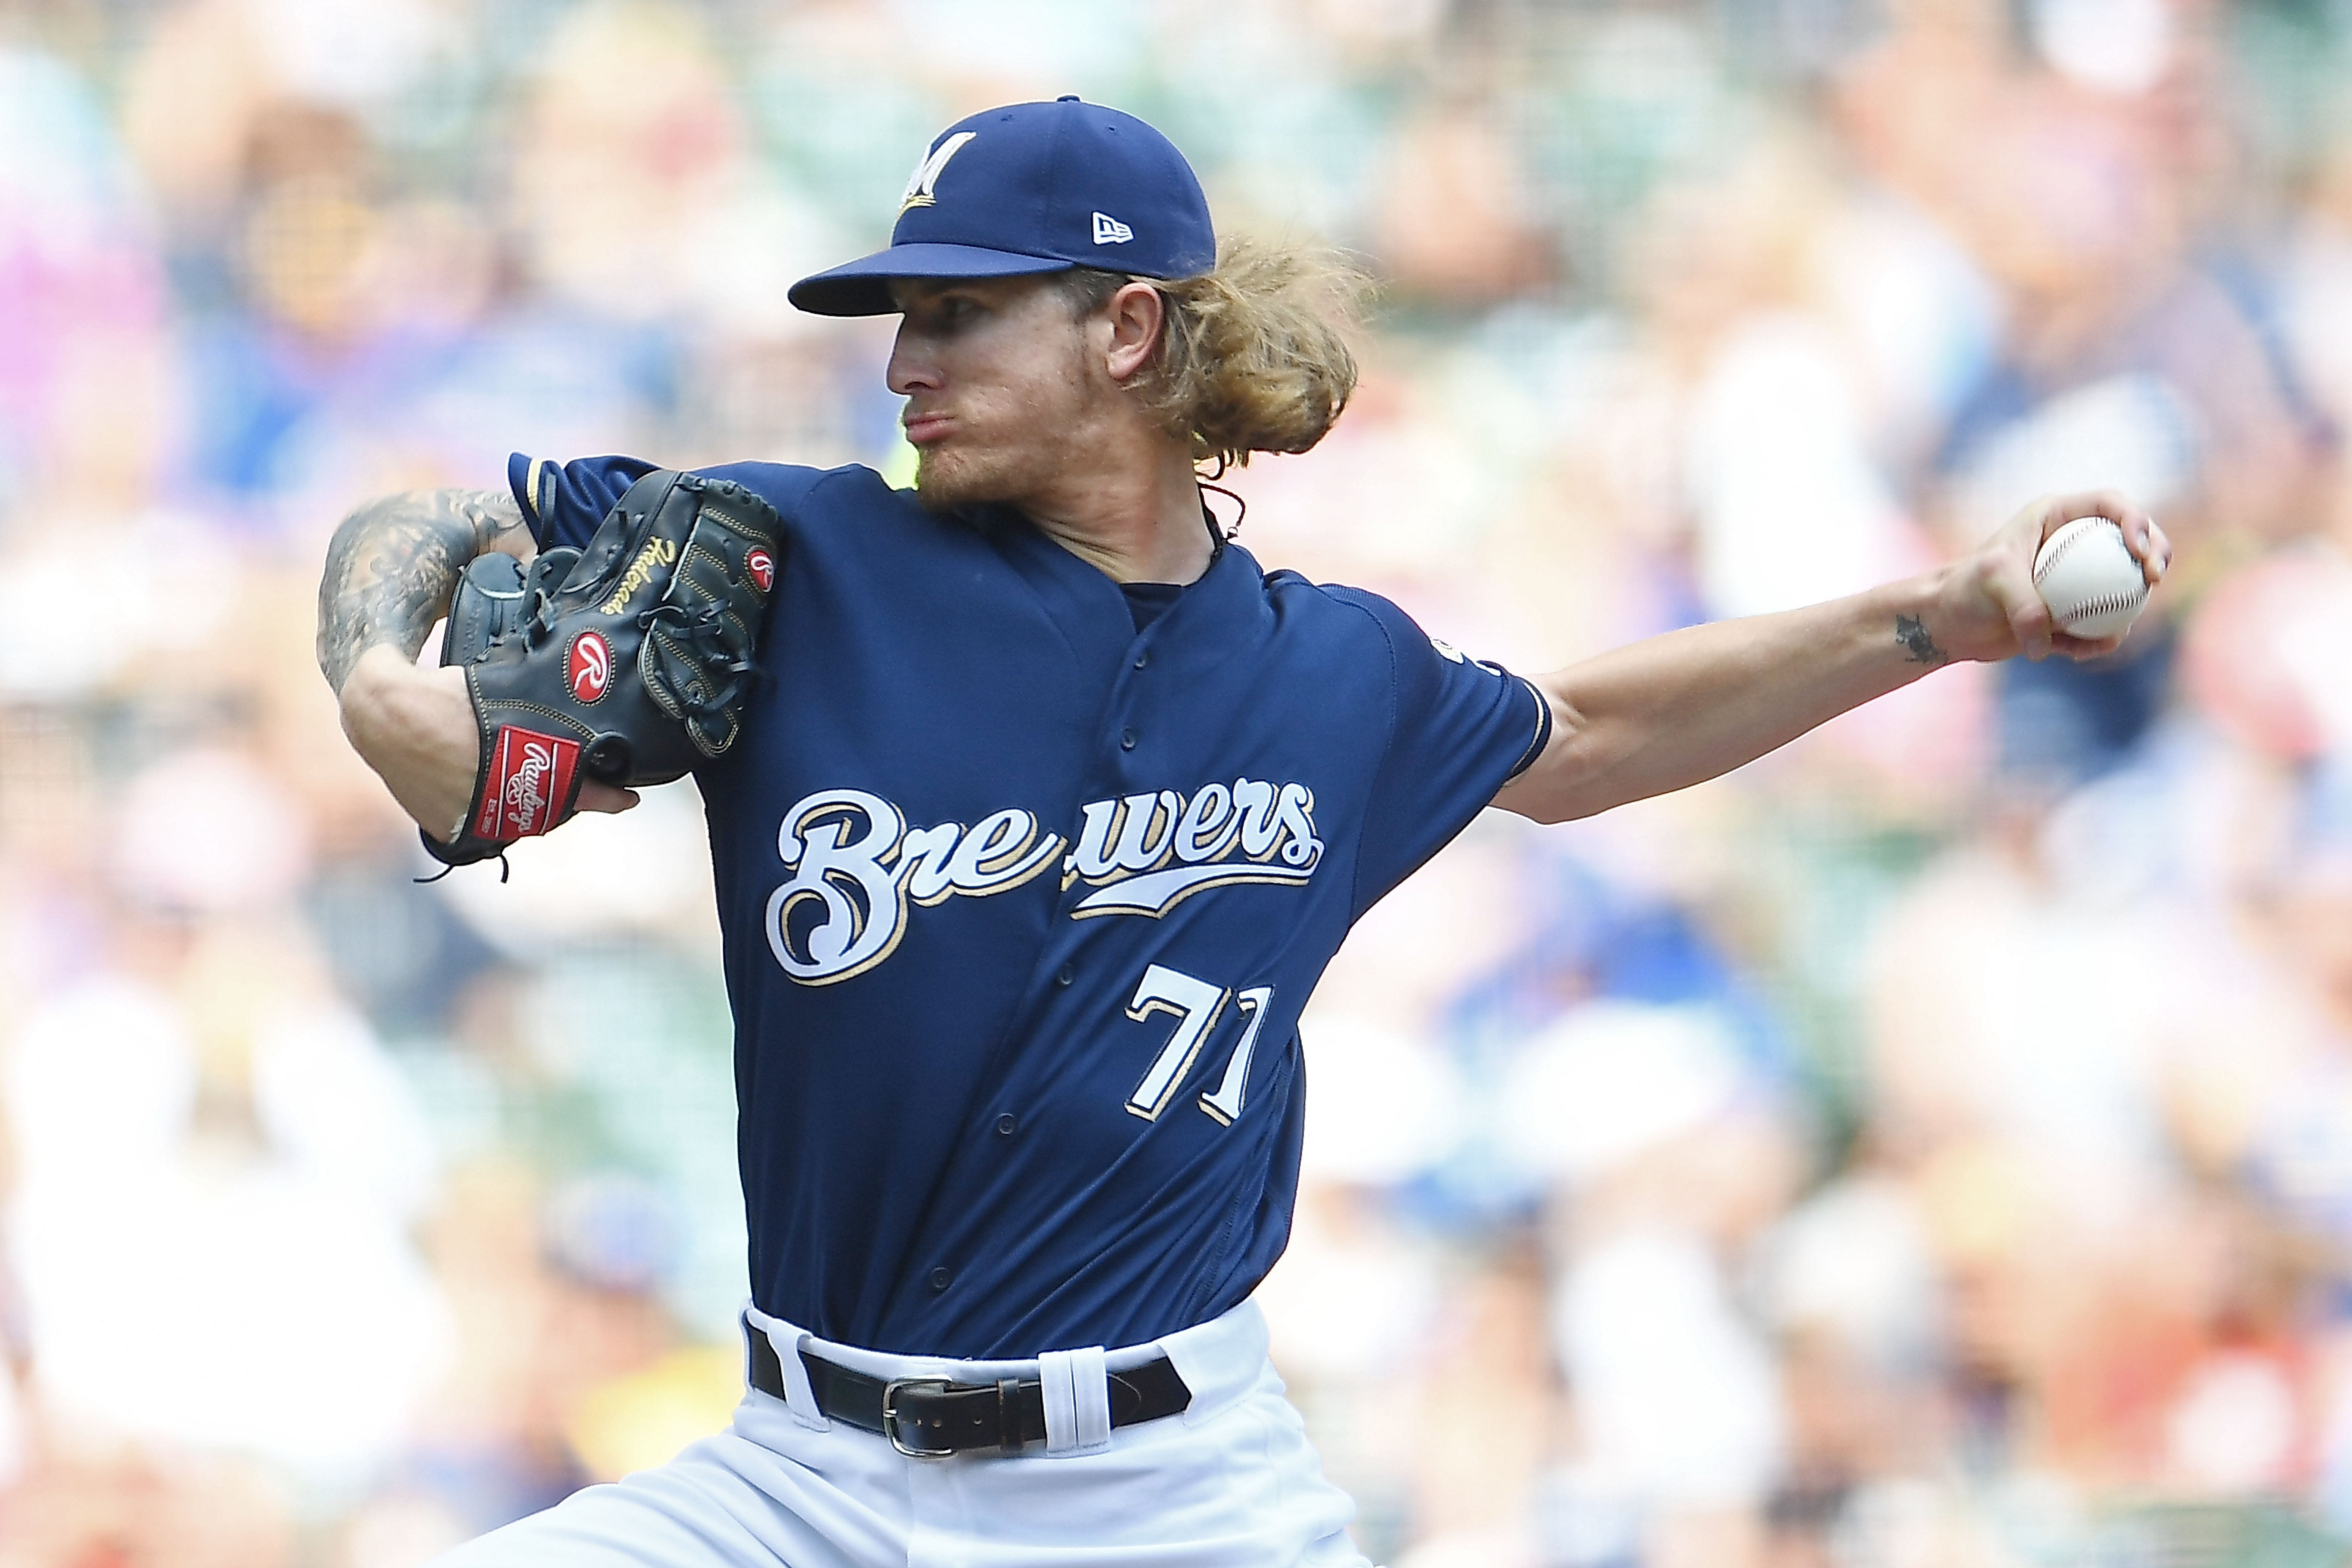 Josh Hader of the Milwaukee Brewers was at the center of a social media scandal.